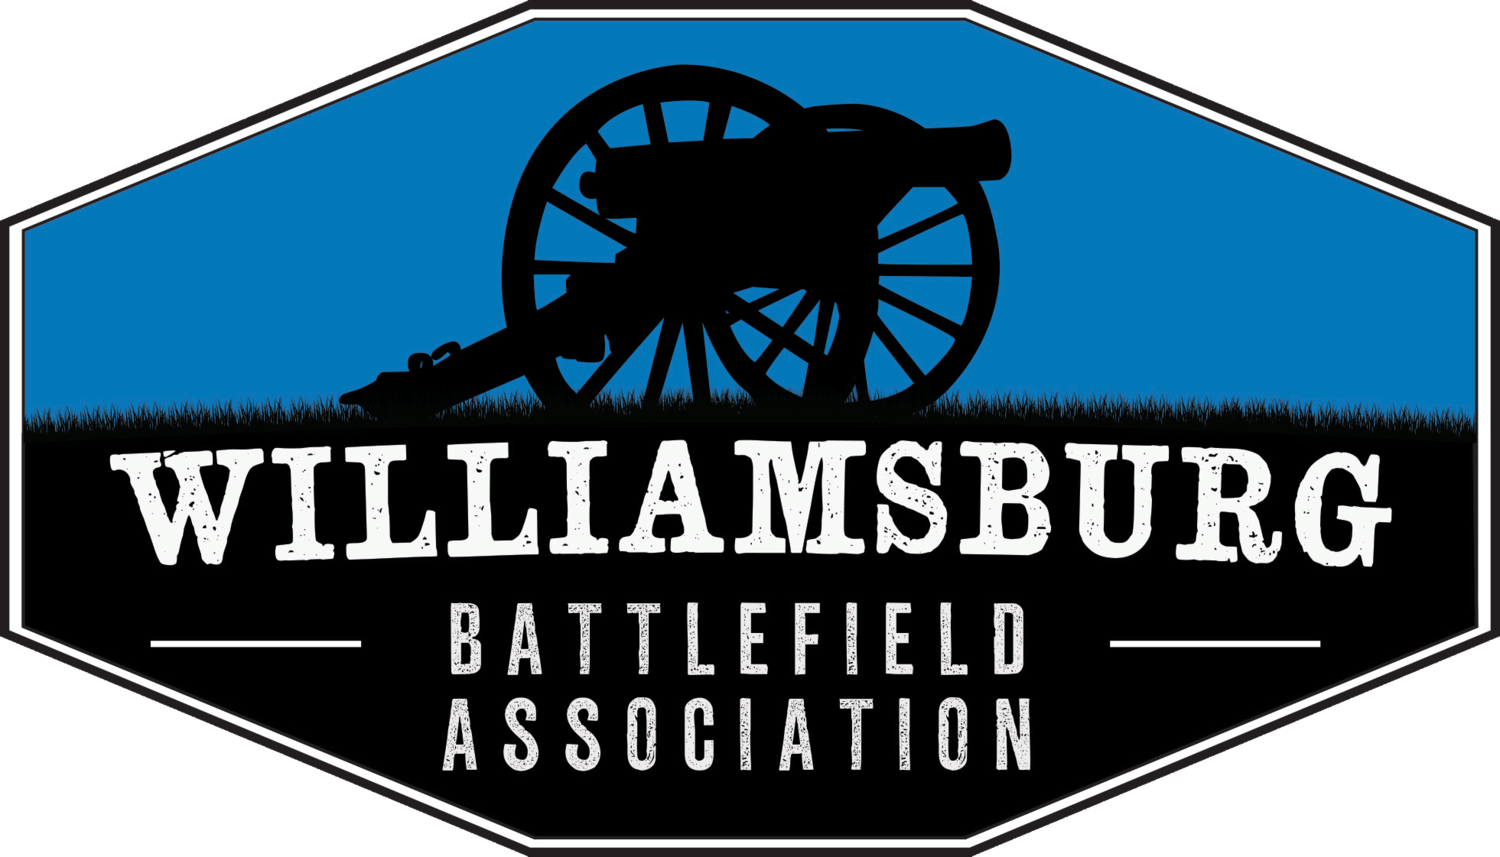 Williamsburg Battlefield Association